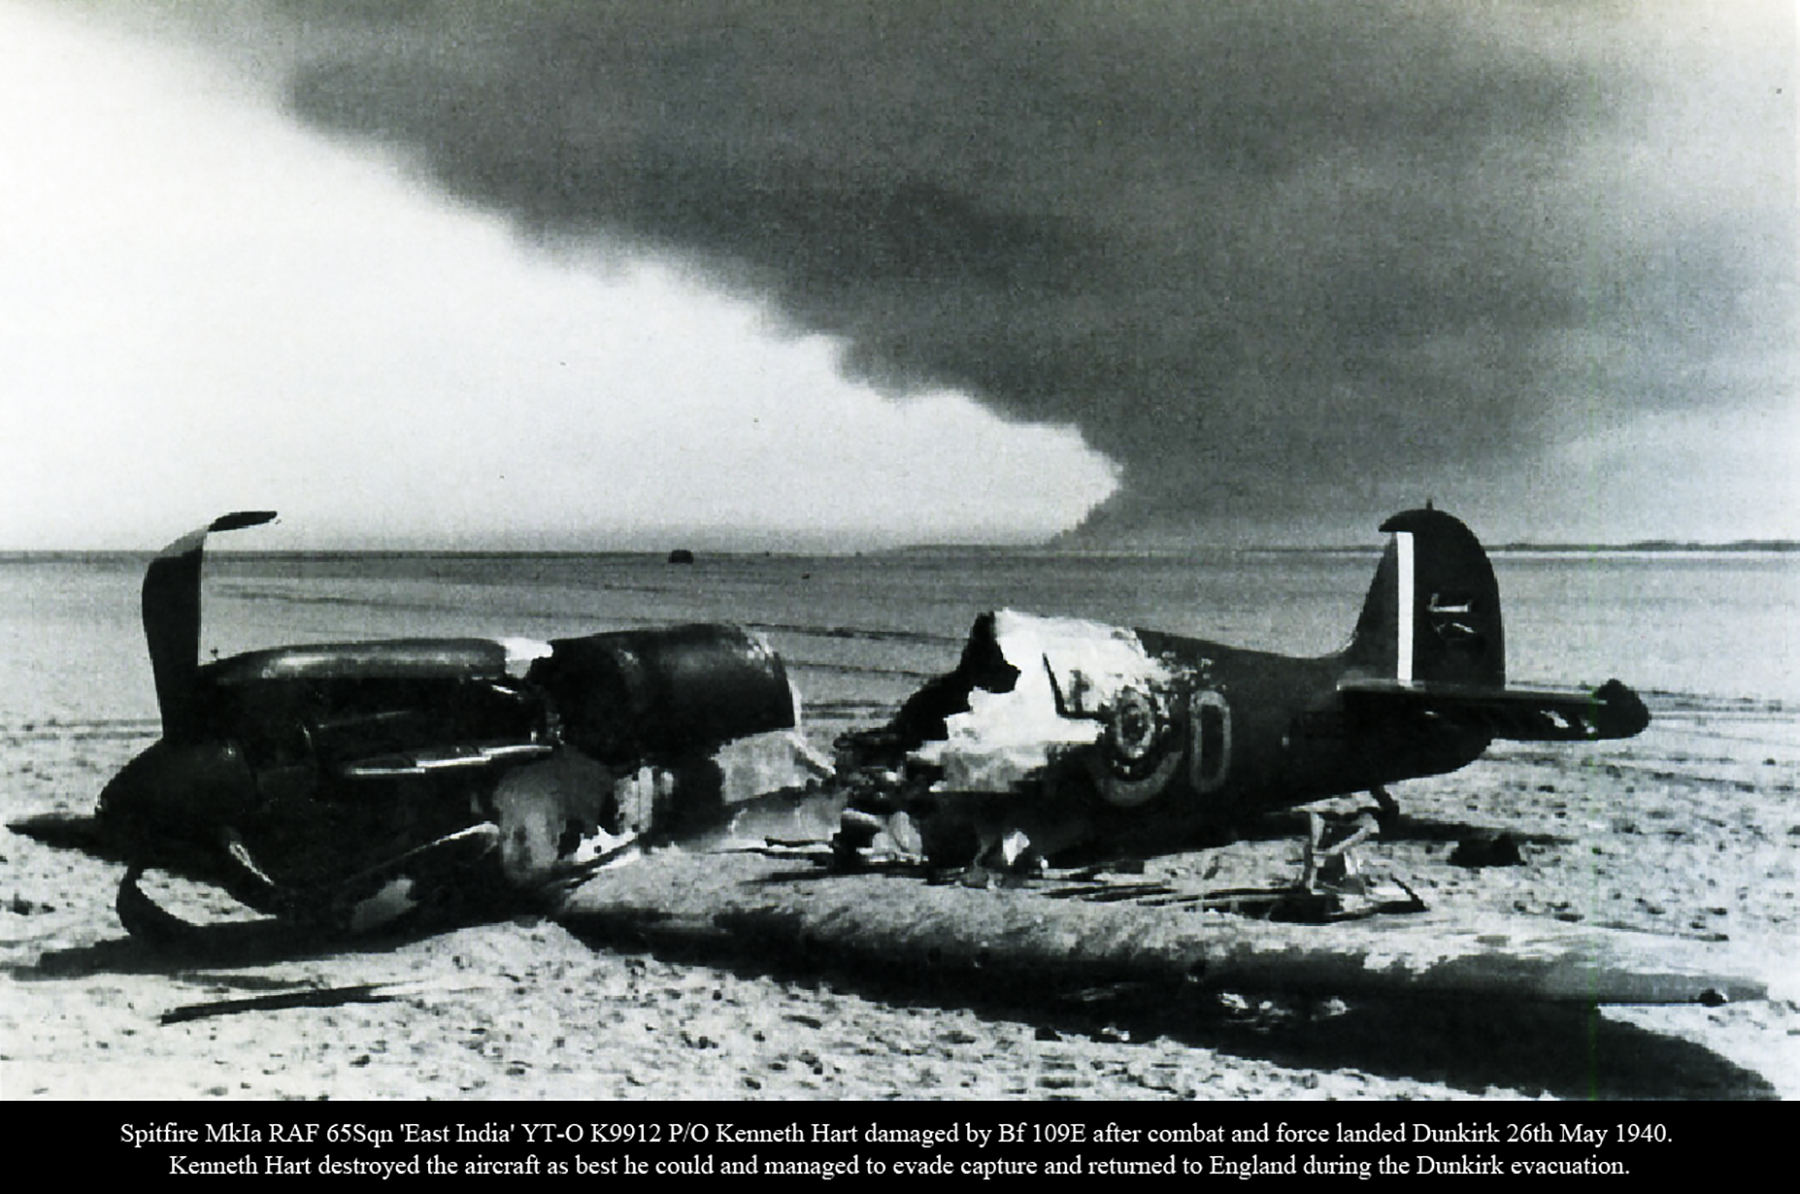 Spitfire MkIa RAF 65Sqn YTO K9912 Kenneth Hart shot down by Bf 109 Dunkirk 26th May 1940